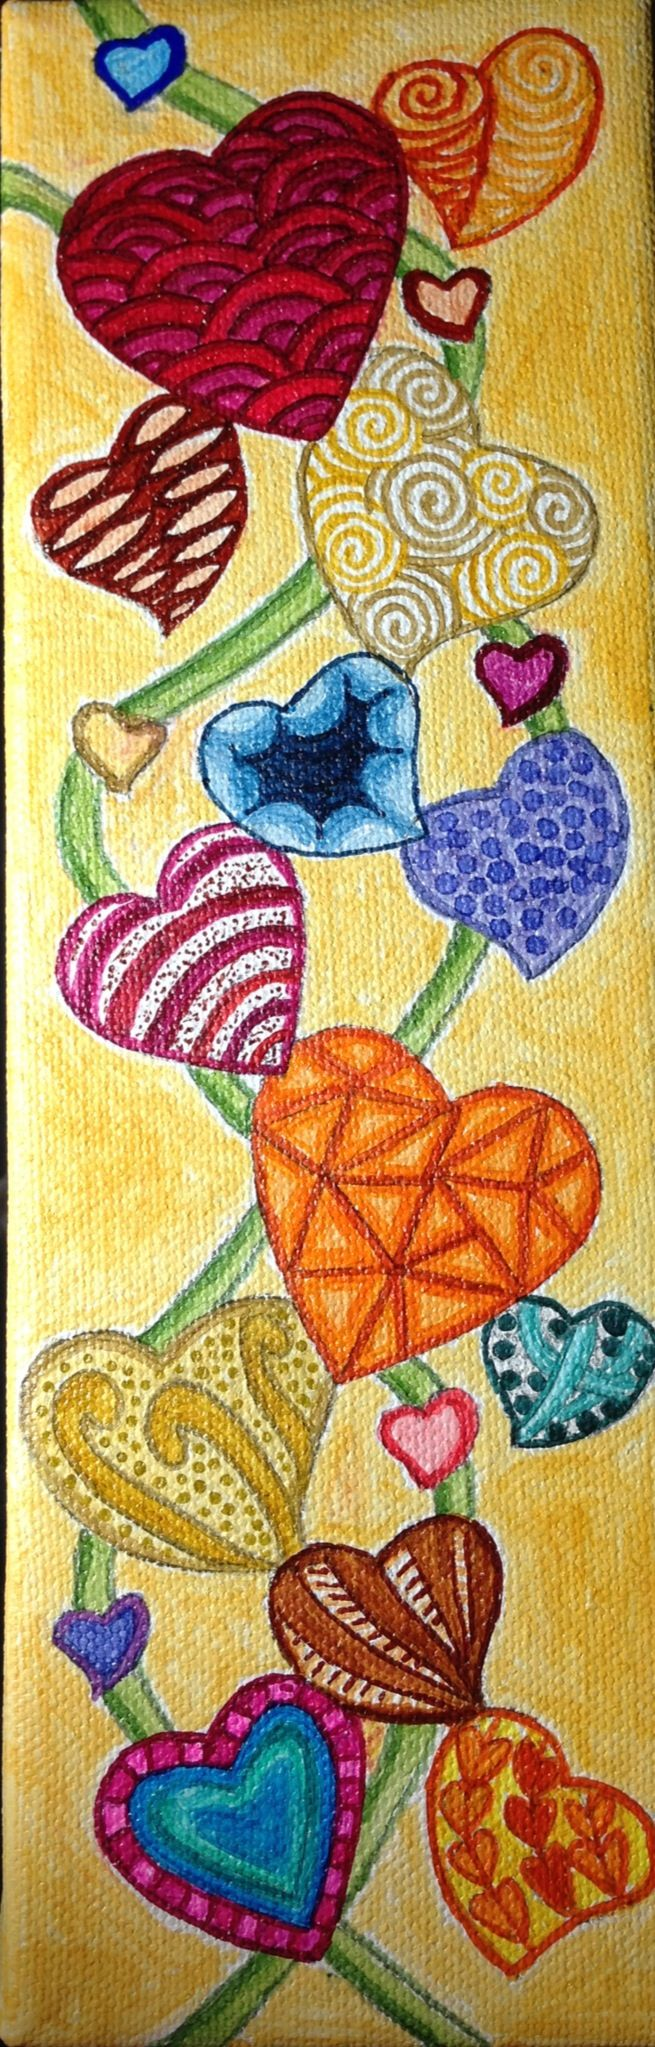 Zentangled hearts on canvas   -   yes, good thought!!   Stretch art onto canvas!!